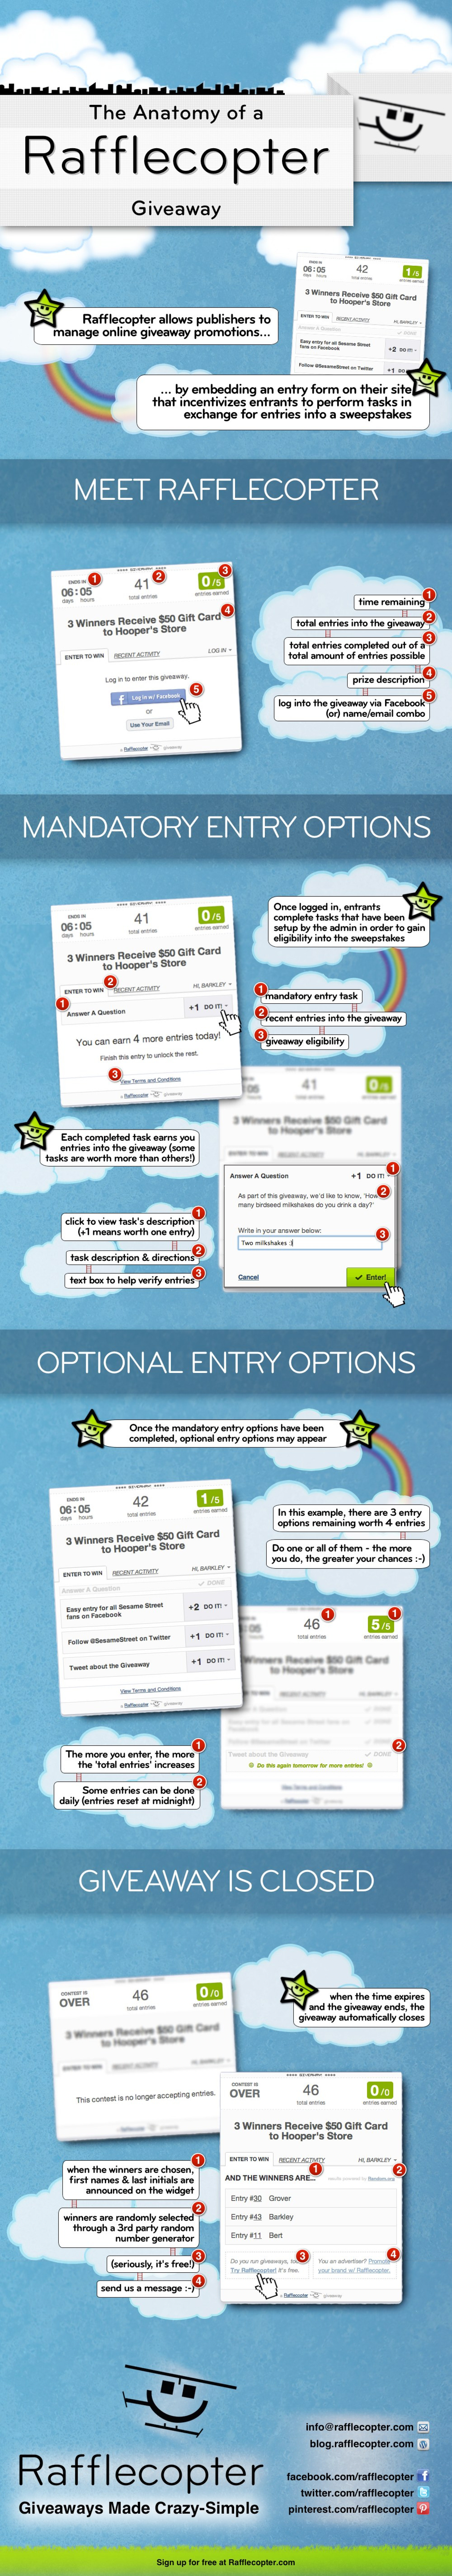 The Anatomy of a Rafflecopter Giveaway Infographic